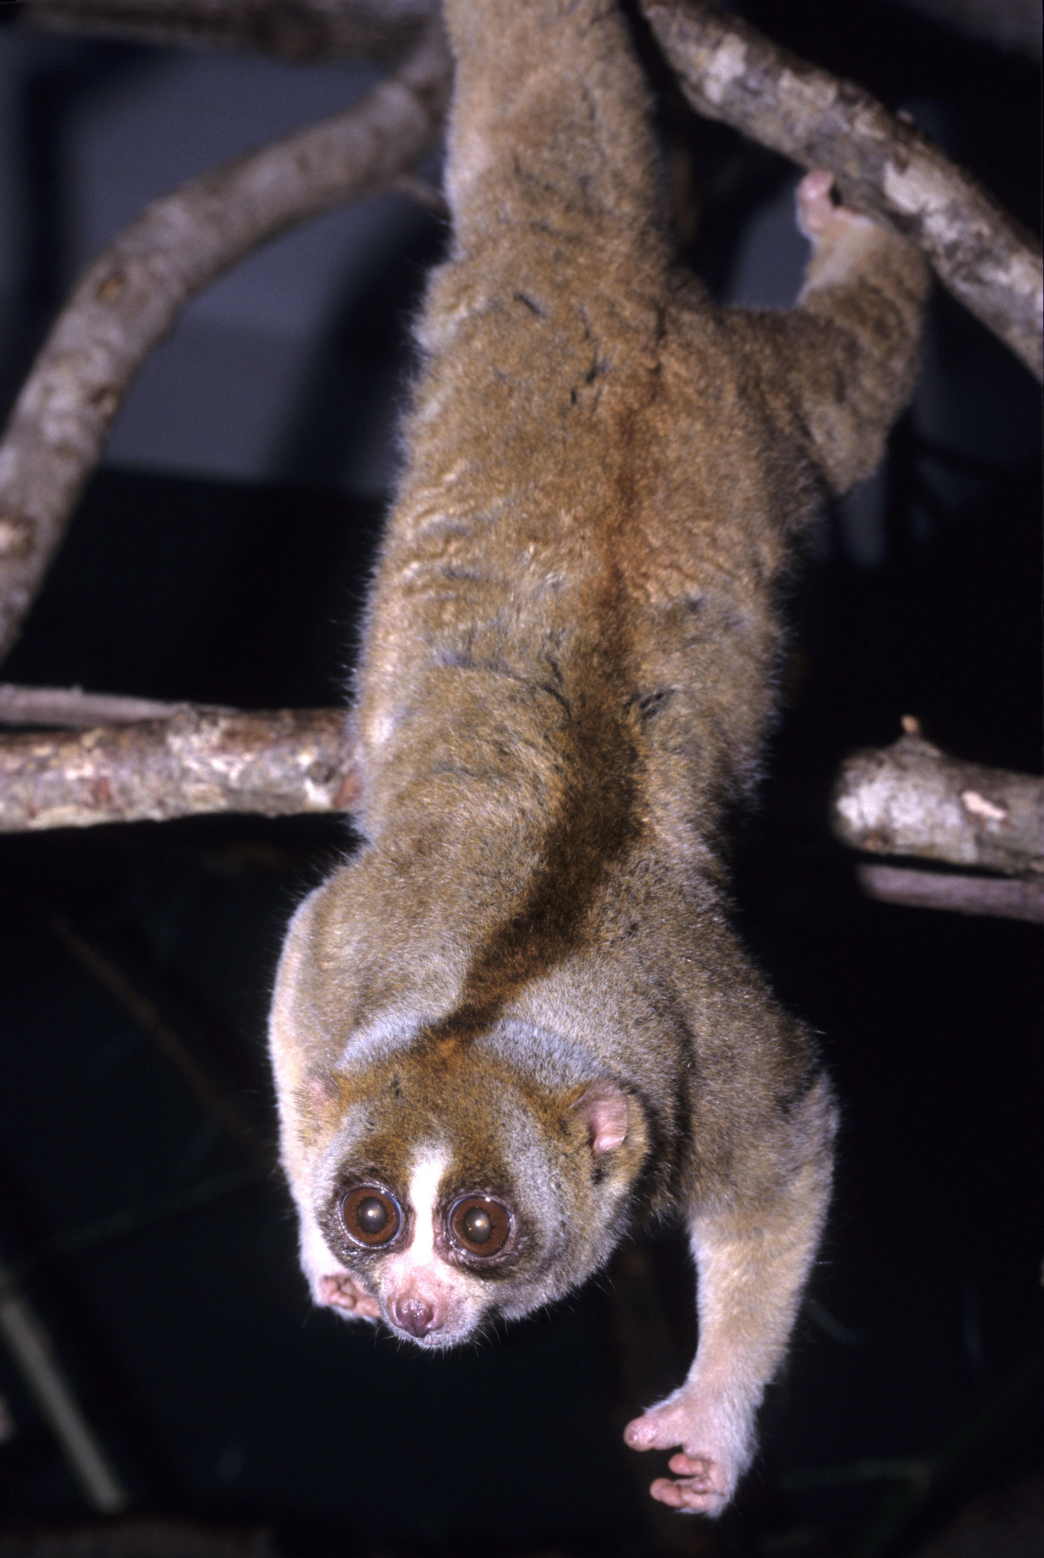 "Native to the tropical forests of Indonesia, Malaysia, Thailand, and Singapore, the slow loris is the world's only venomous primate. Despite their toxic bite which can protect them from predators, they are endangered by the illegal pet trade. After taking baby lorises out of the wild, animal poachers will clip out their teeth to stop them from biting—and the lorises frequently die or get sick from the procedure. Sadly, viral videos on the Web—showing ""cute,"" captive lorises—are fueling the illegal trafficking. (Image via Wikipedia)"